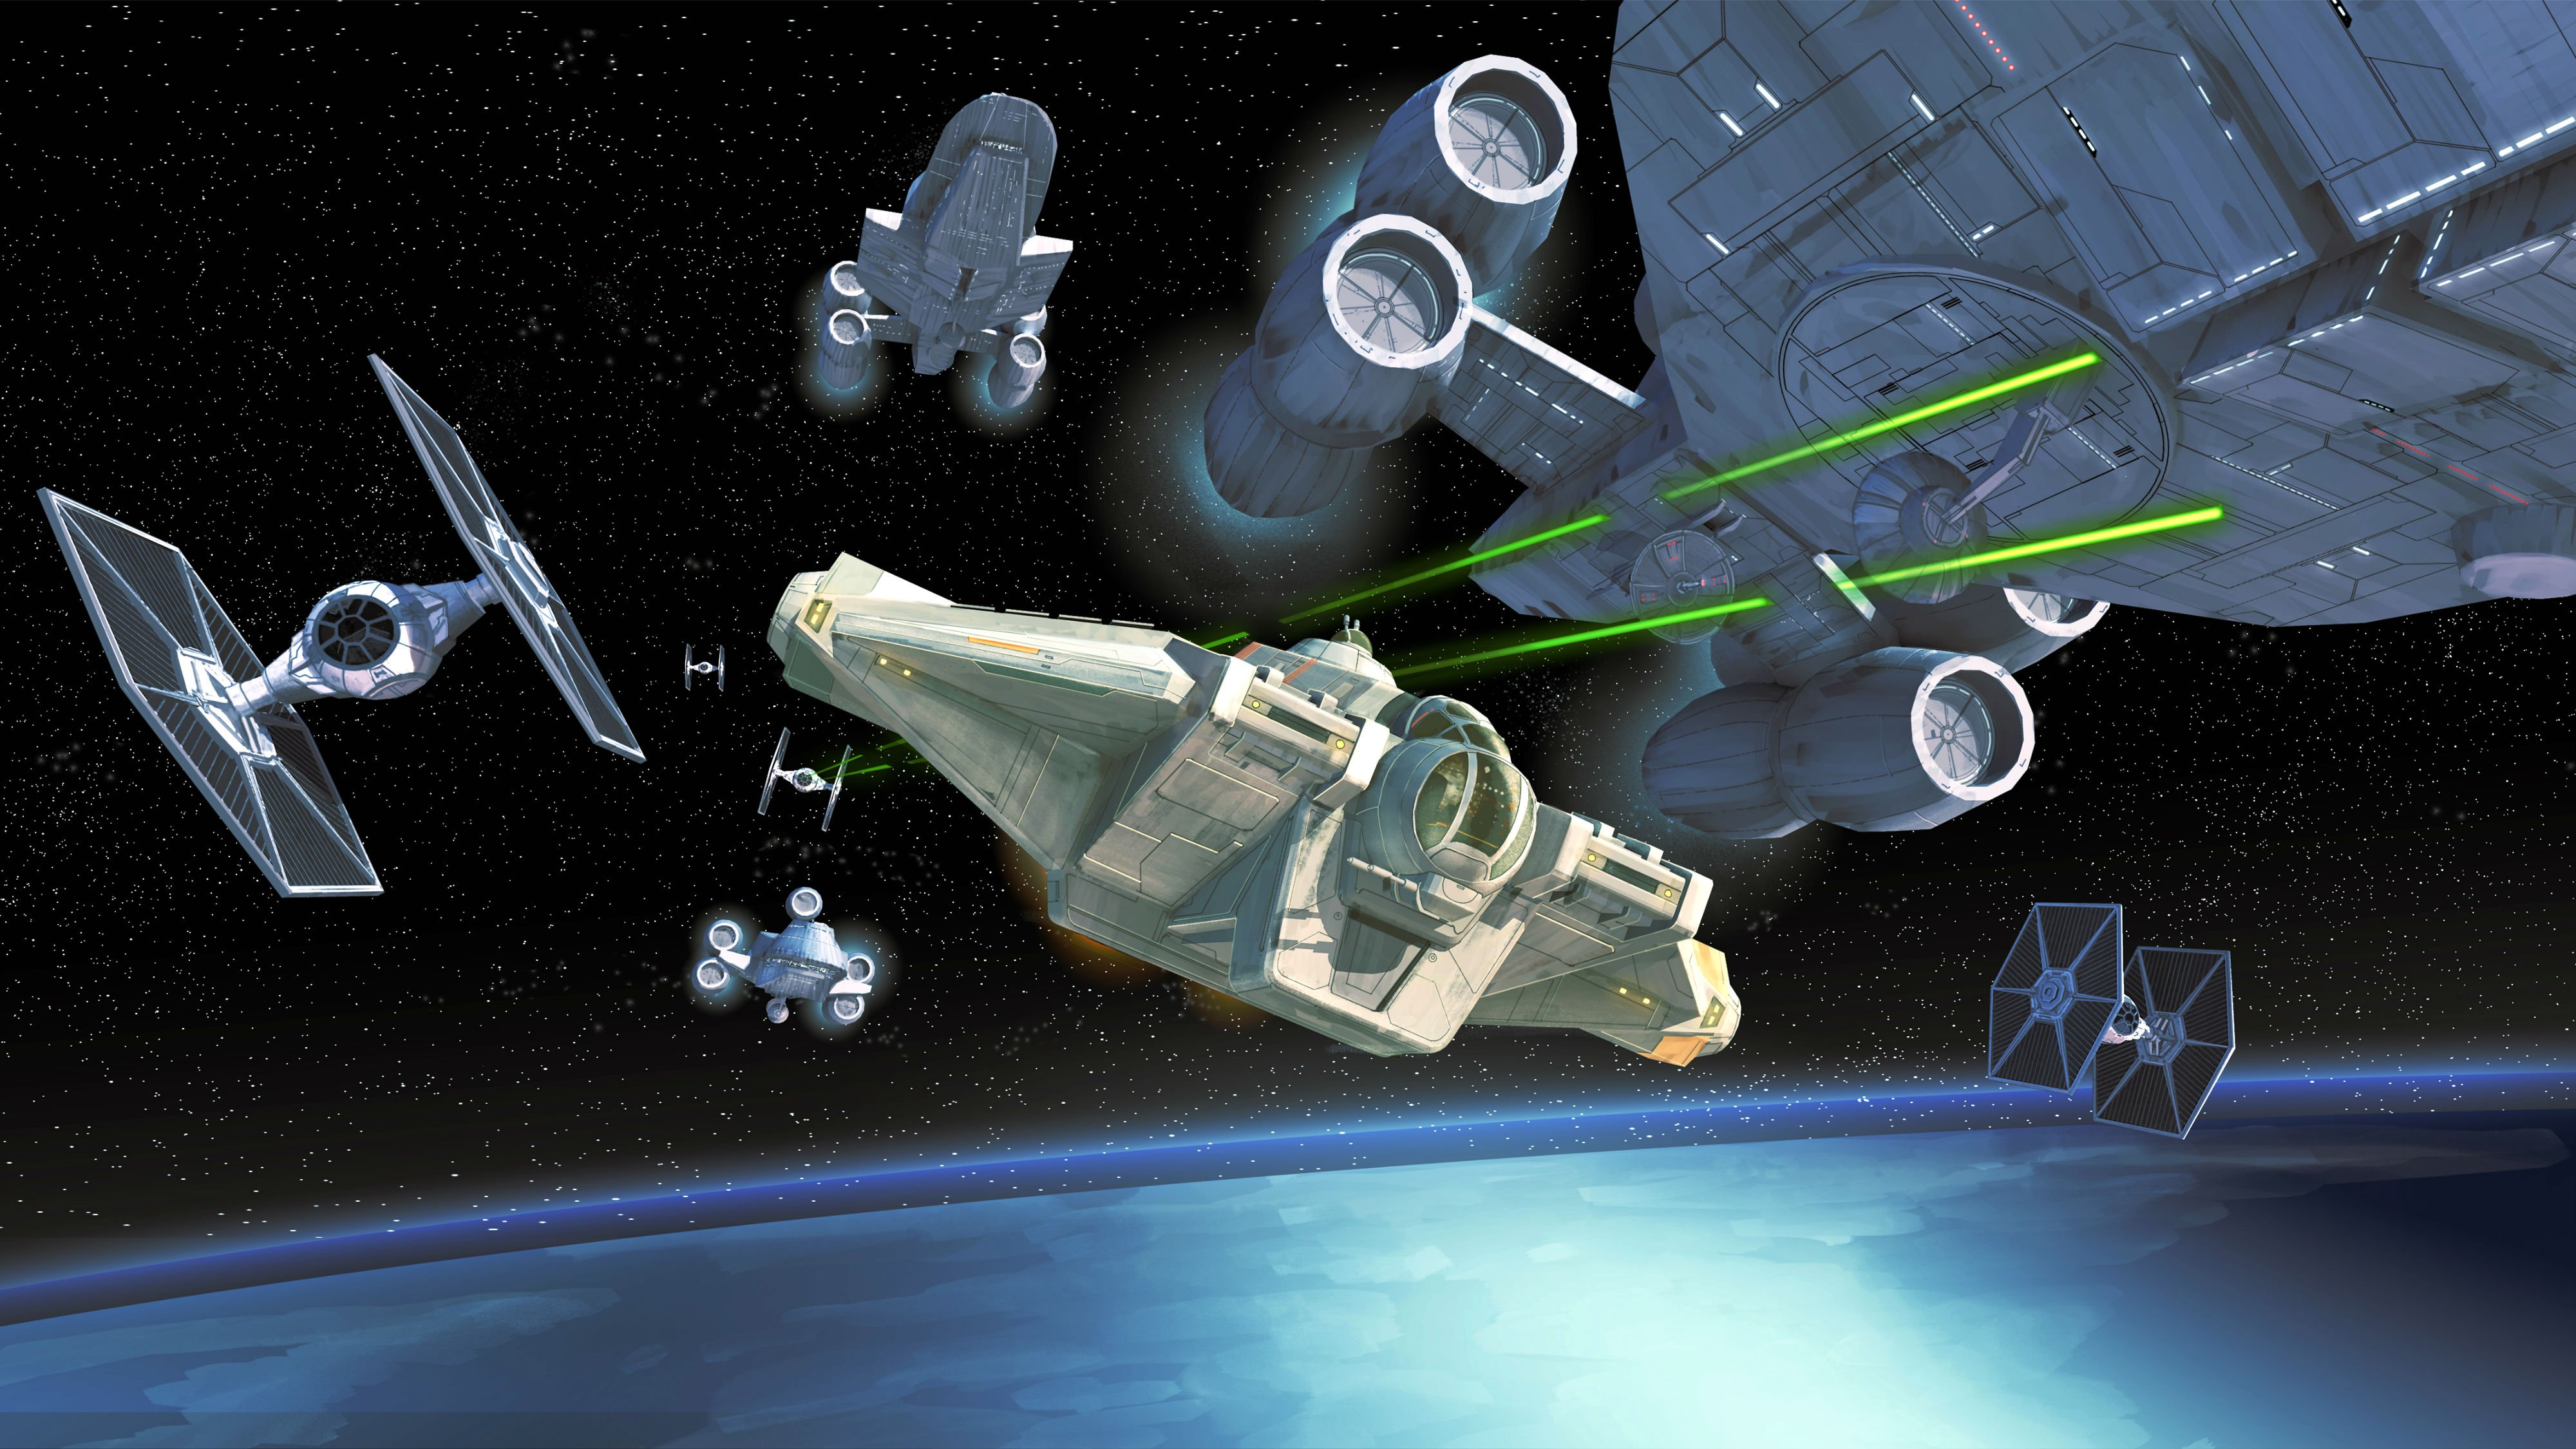 download star wars animated wallpaper gallery